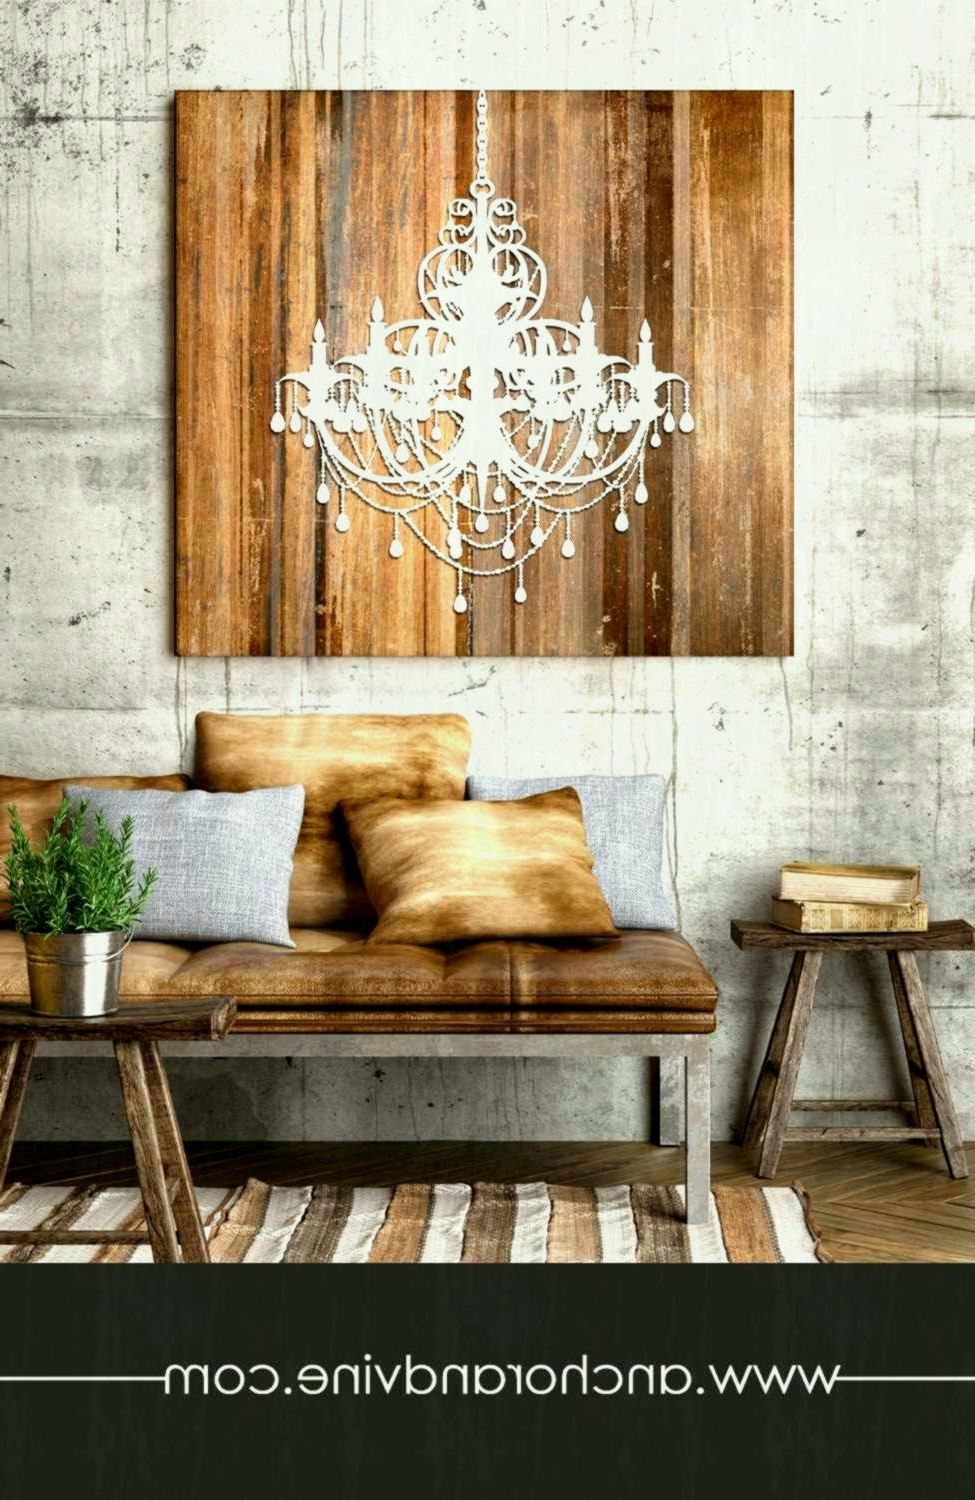 2018 Chandelier Wall Art Inside Large Chandelier Wall Art Unique Canvas Oversized Decor Of (View 2 of 20)